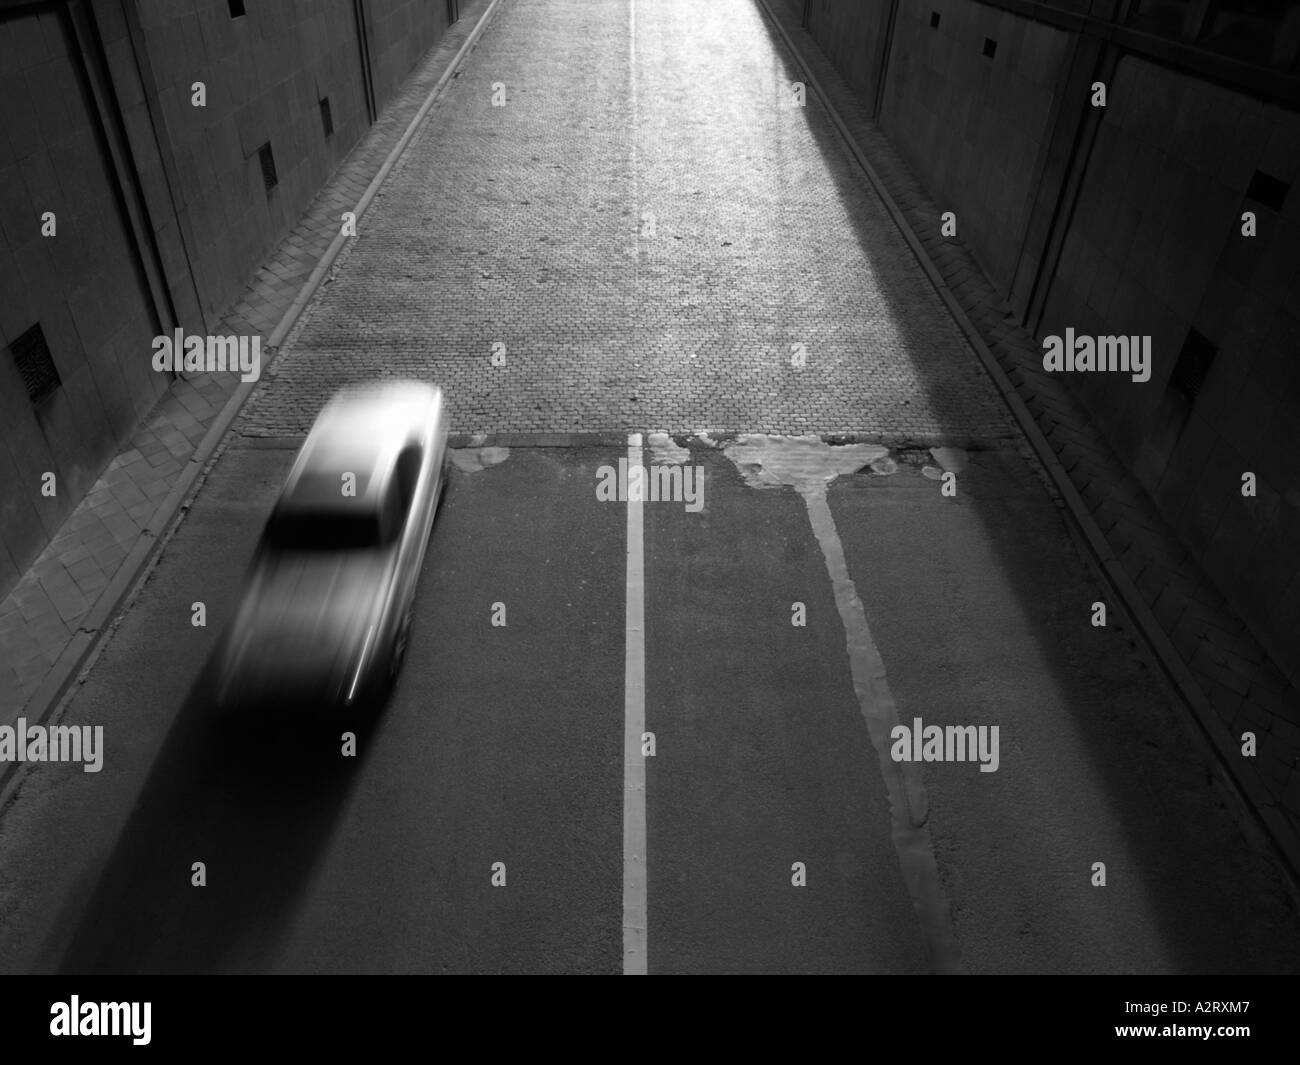 Silver car Mercedes speeding into tunnel Brussels Belgium motion blur monochrome black and white - Stock Image